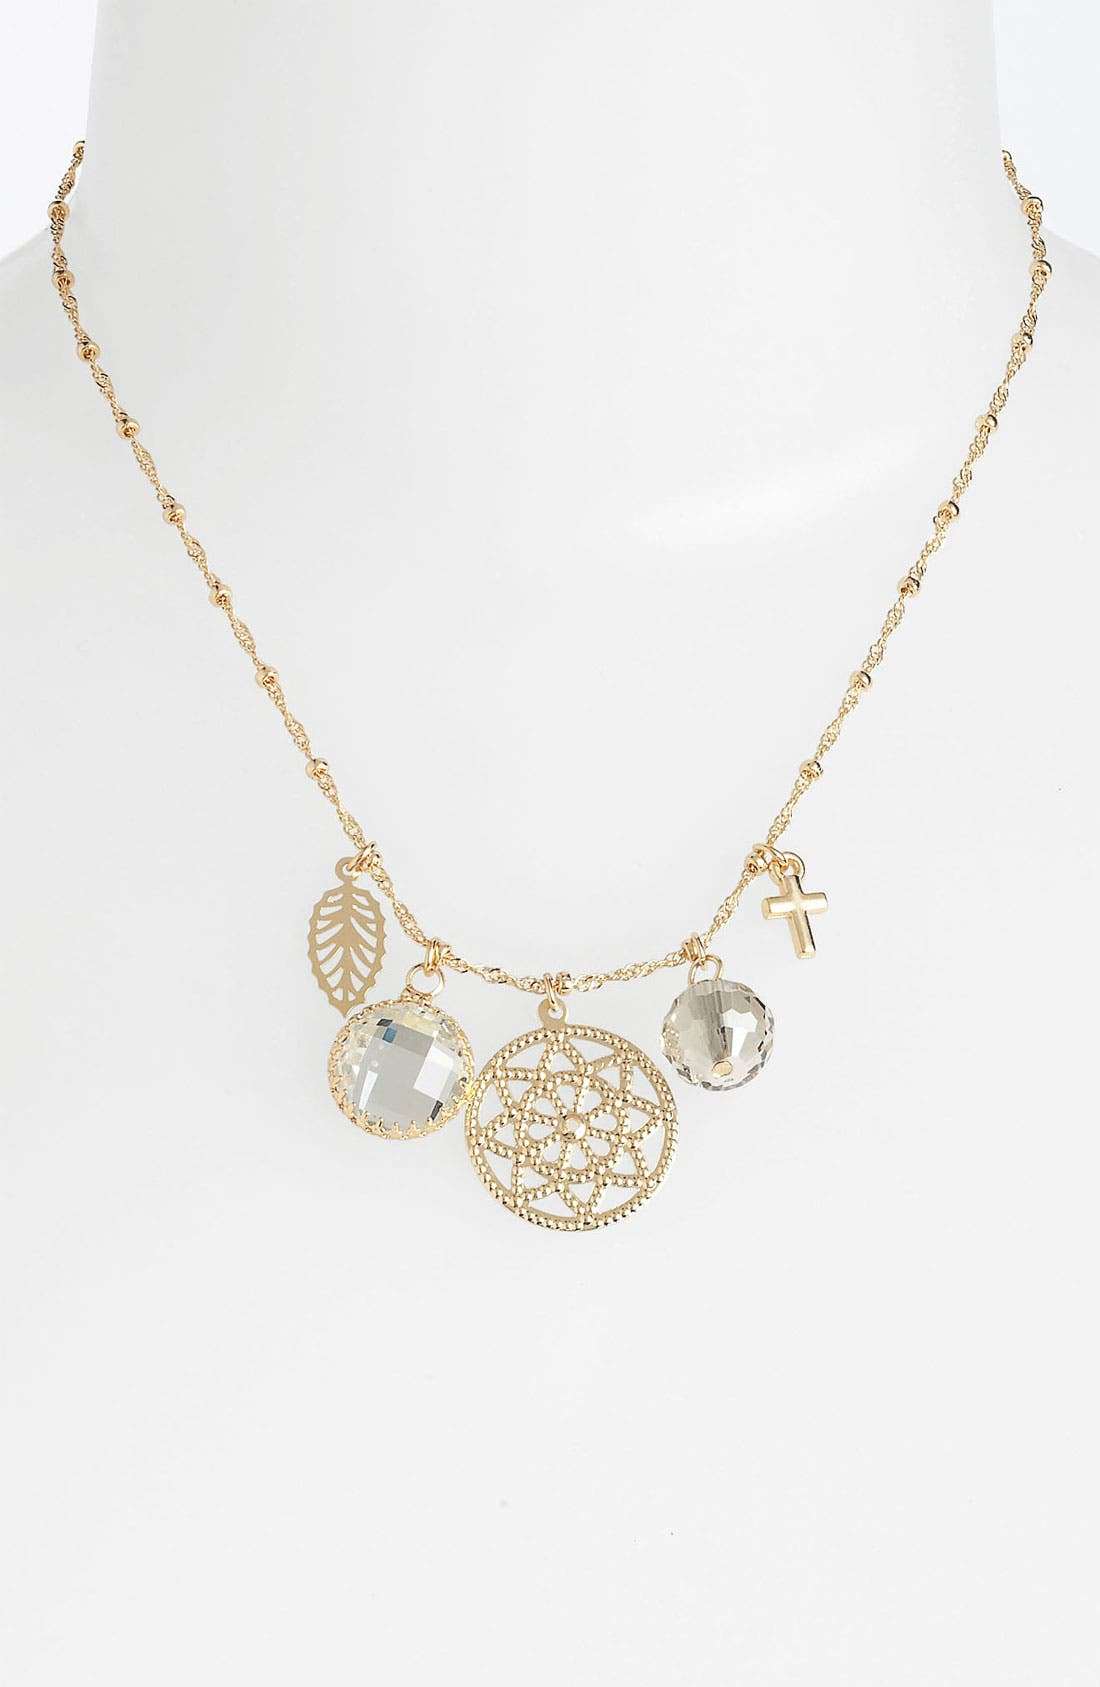 Main Image - Nordstrom 'Treasures' Cluster Pendant Necklace (Special Purchase)